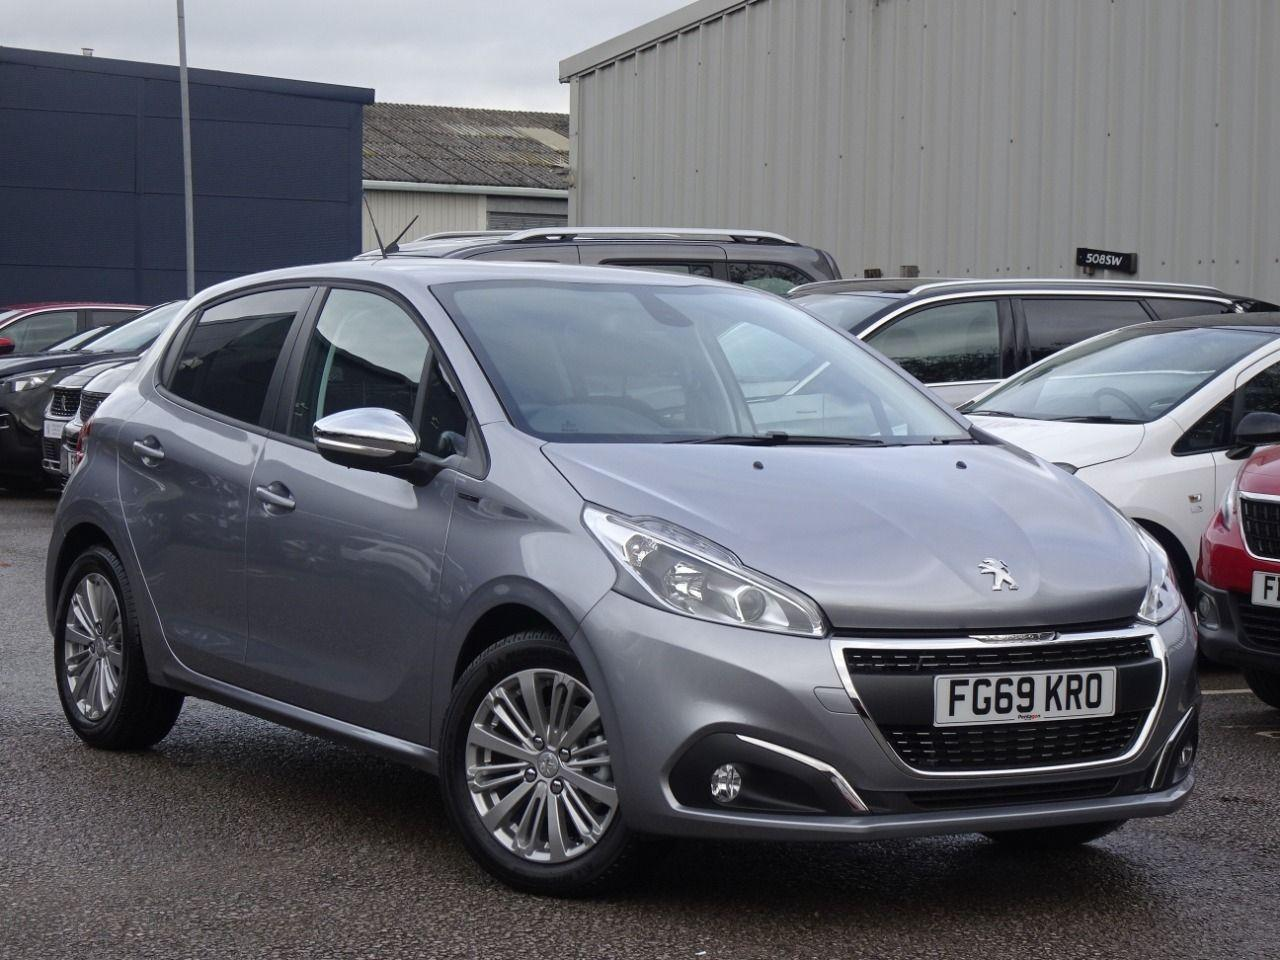 Peugeot 208 1.2 PURETECH 82PS SIGNATURE 5DR START STOP